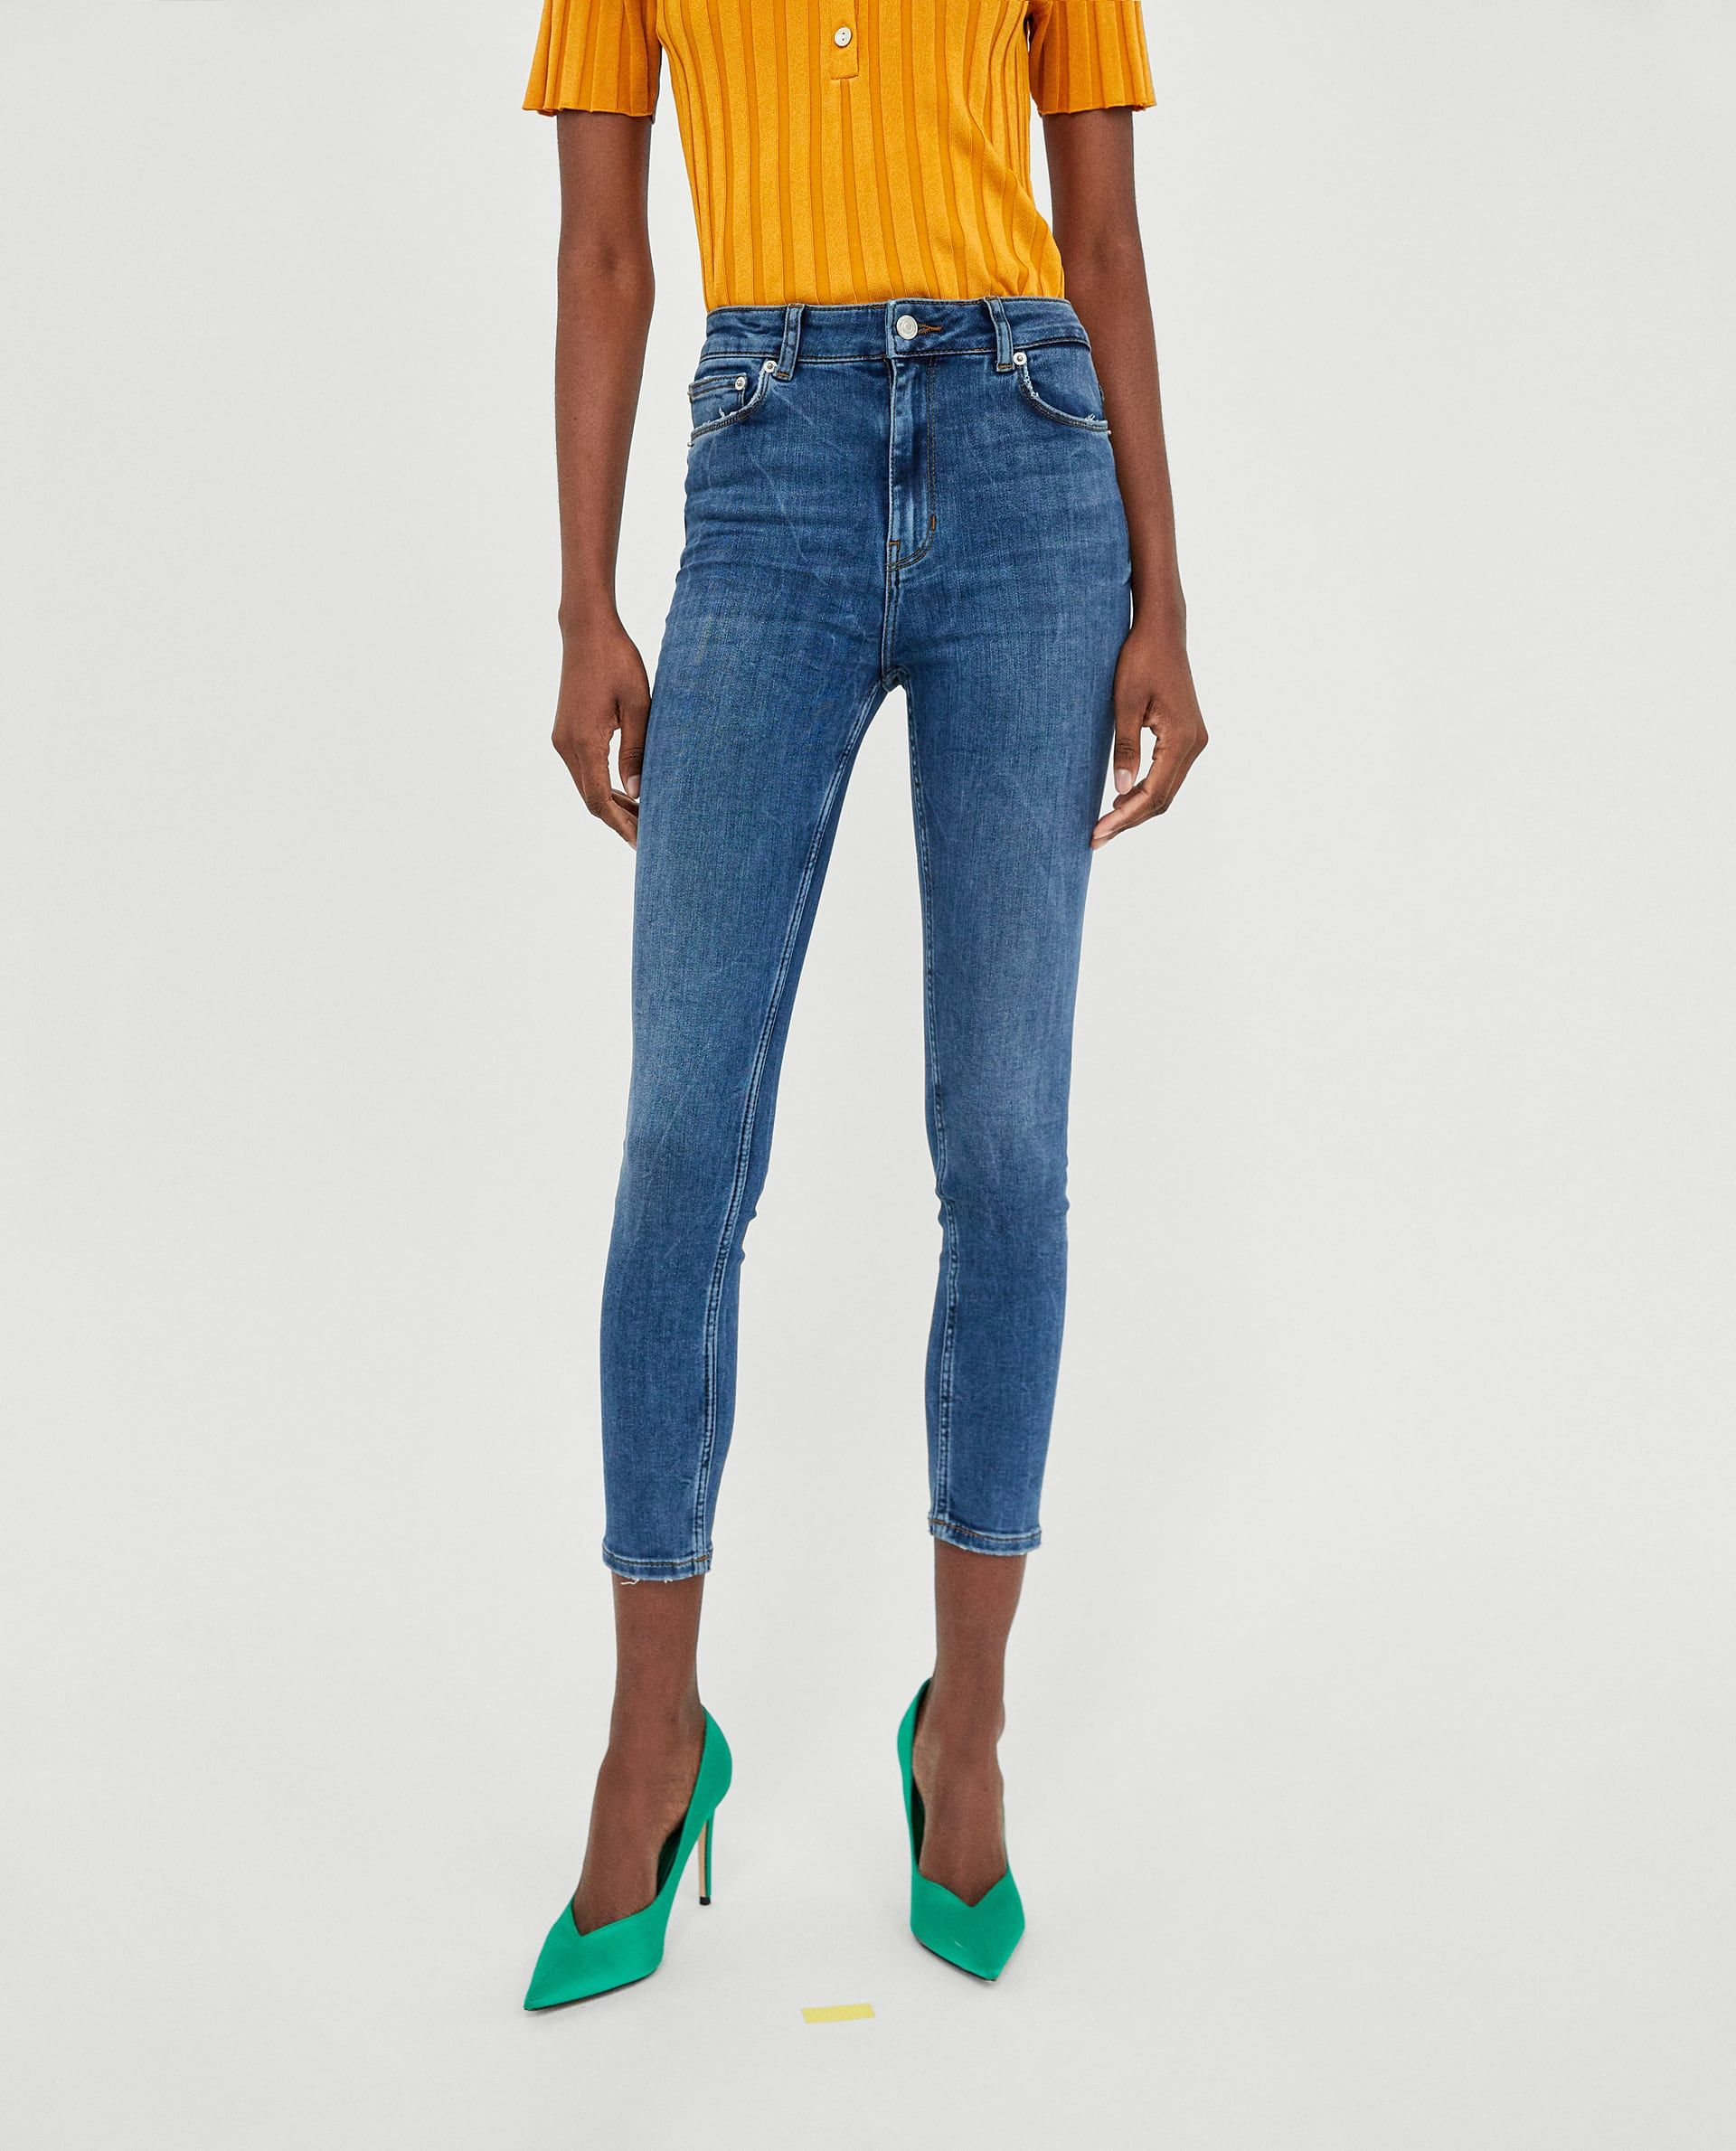 b972bb33 JEANS HIGH WAIST LIGHT BLEND | Jns | High jeans, Jeans, High waist jeans